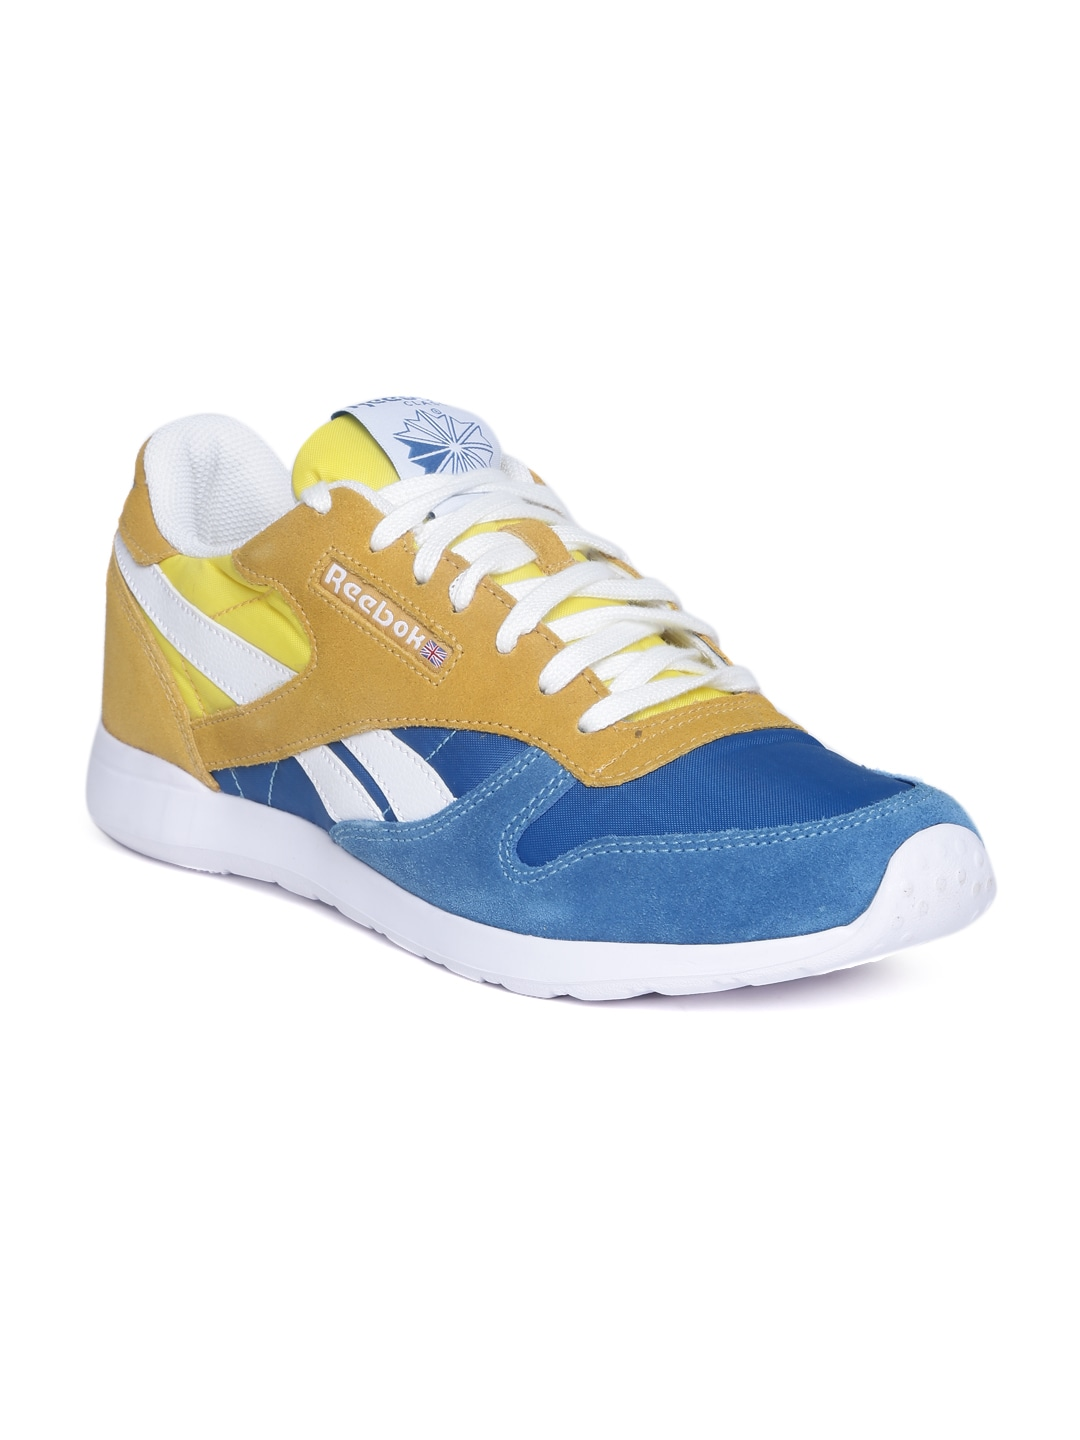 3e4a3cc0b Reebok m46114 Classic Men Blue Mustard Yellow Cl Leather Retro Lite Lp Casual  Shoes- Price in India